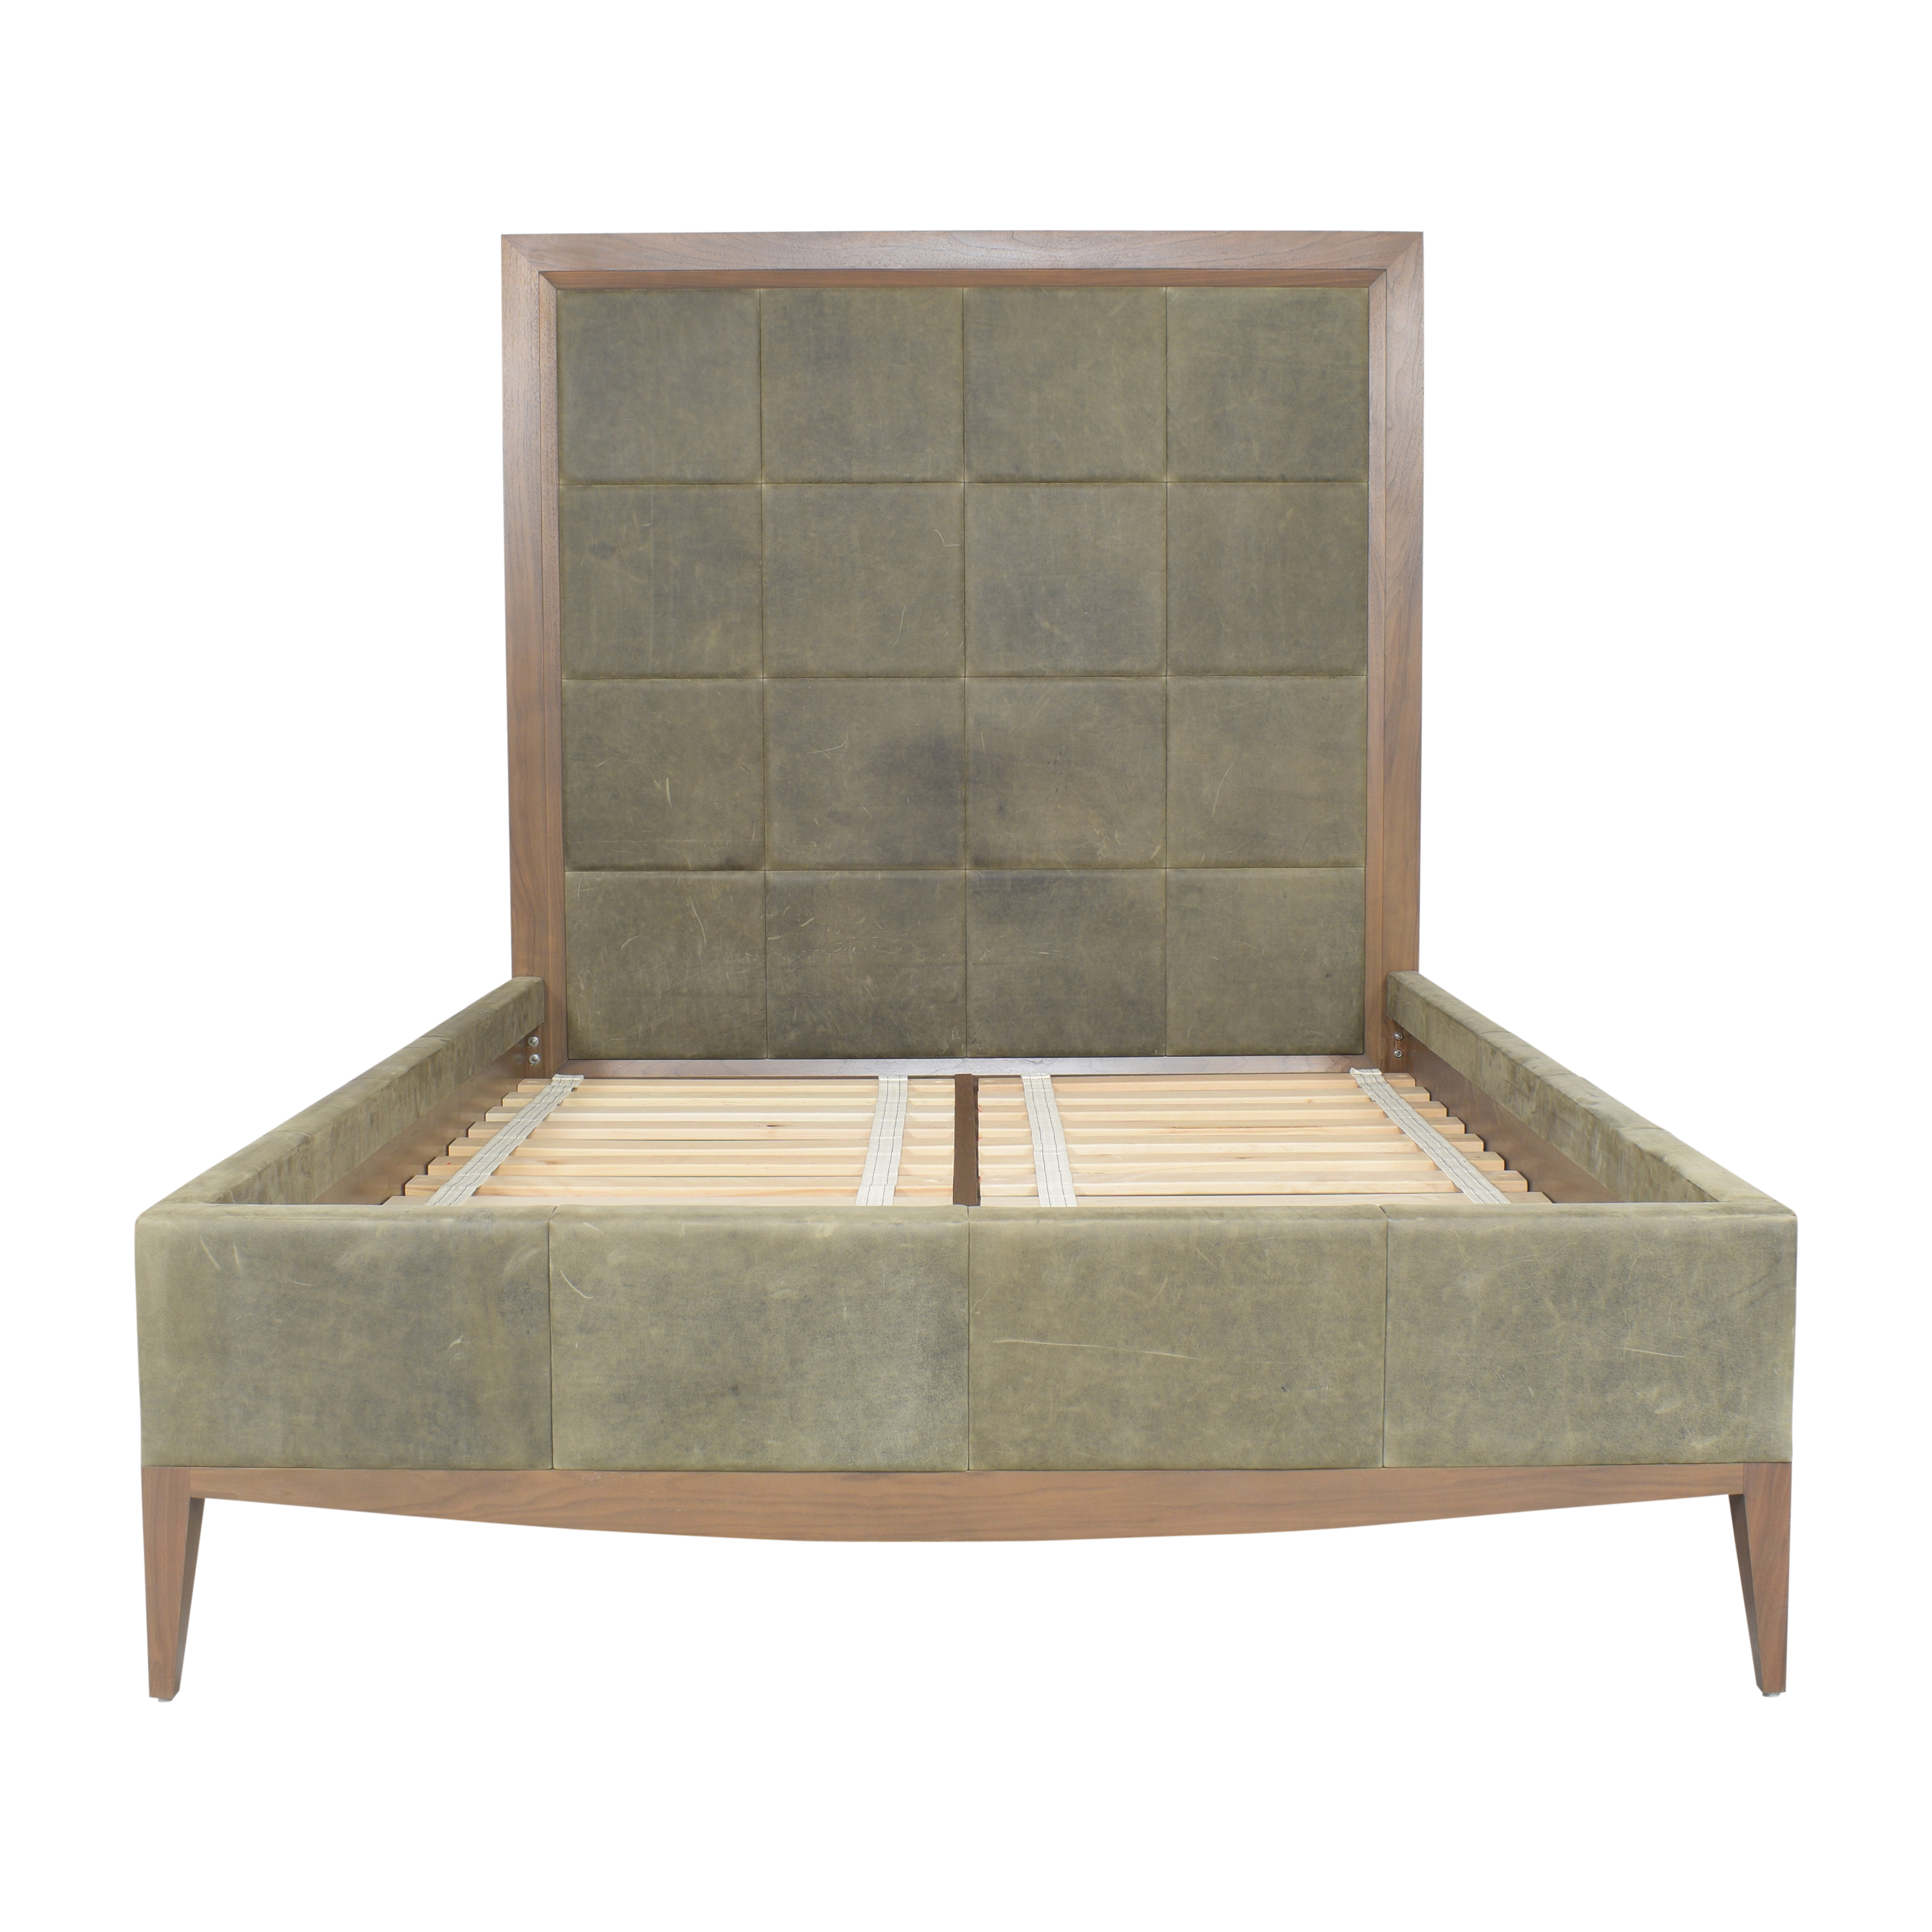 The New Traditionalists Tall Panel Queen Bed / Bed Frames